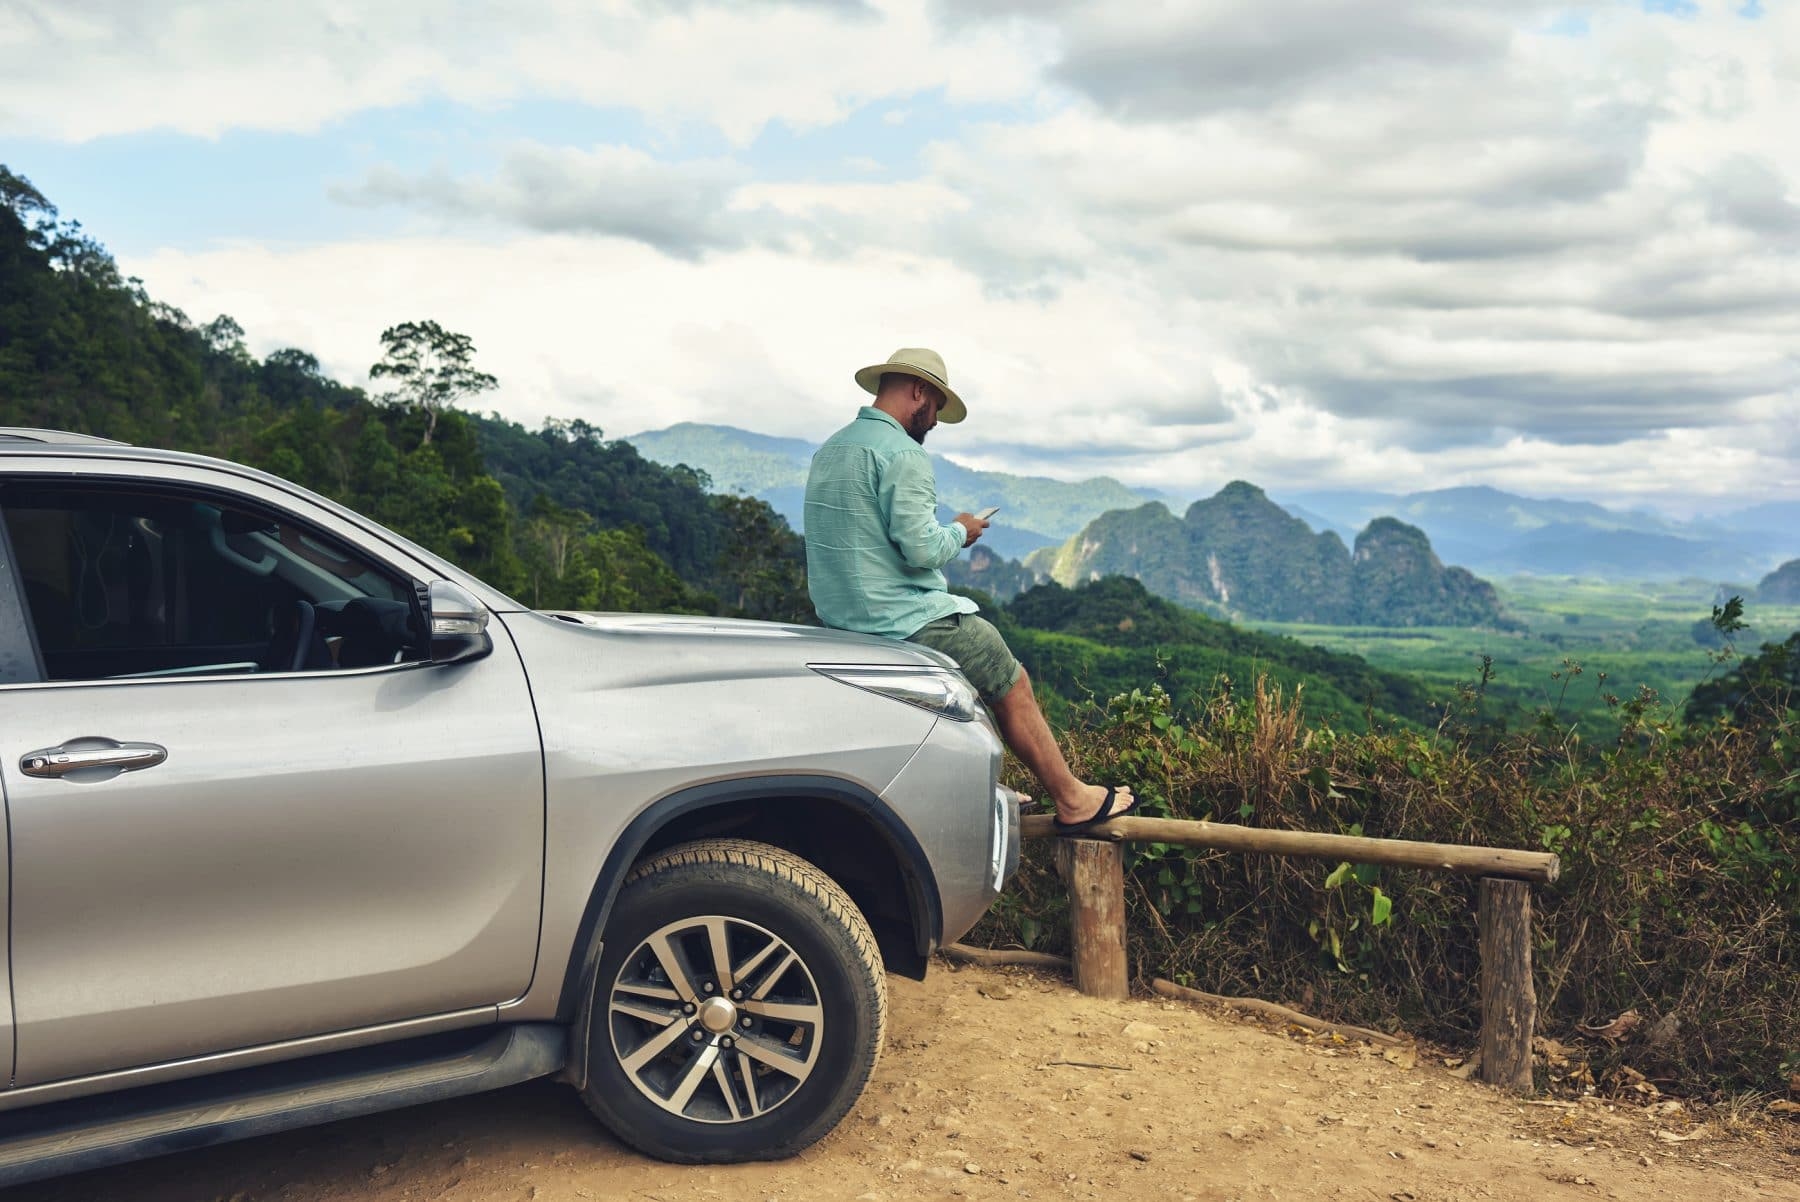 Expert Guide: How to Rent a Car Cheaply and Safely in Costa Rica